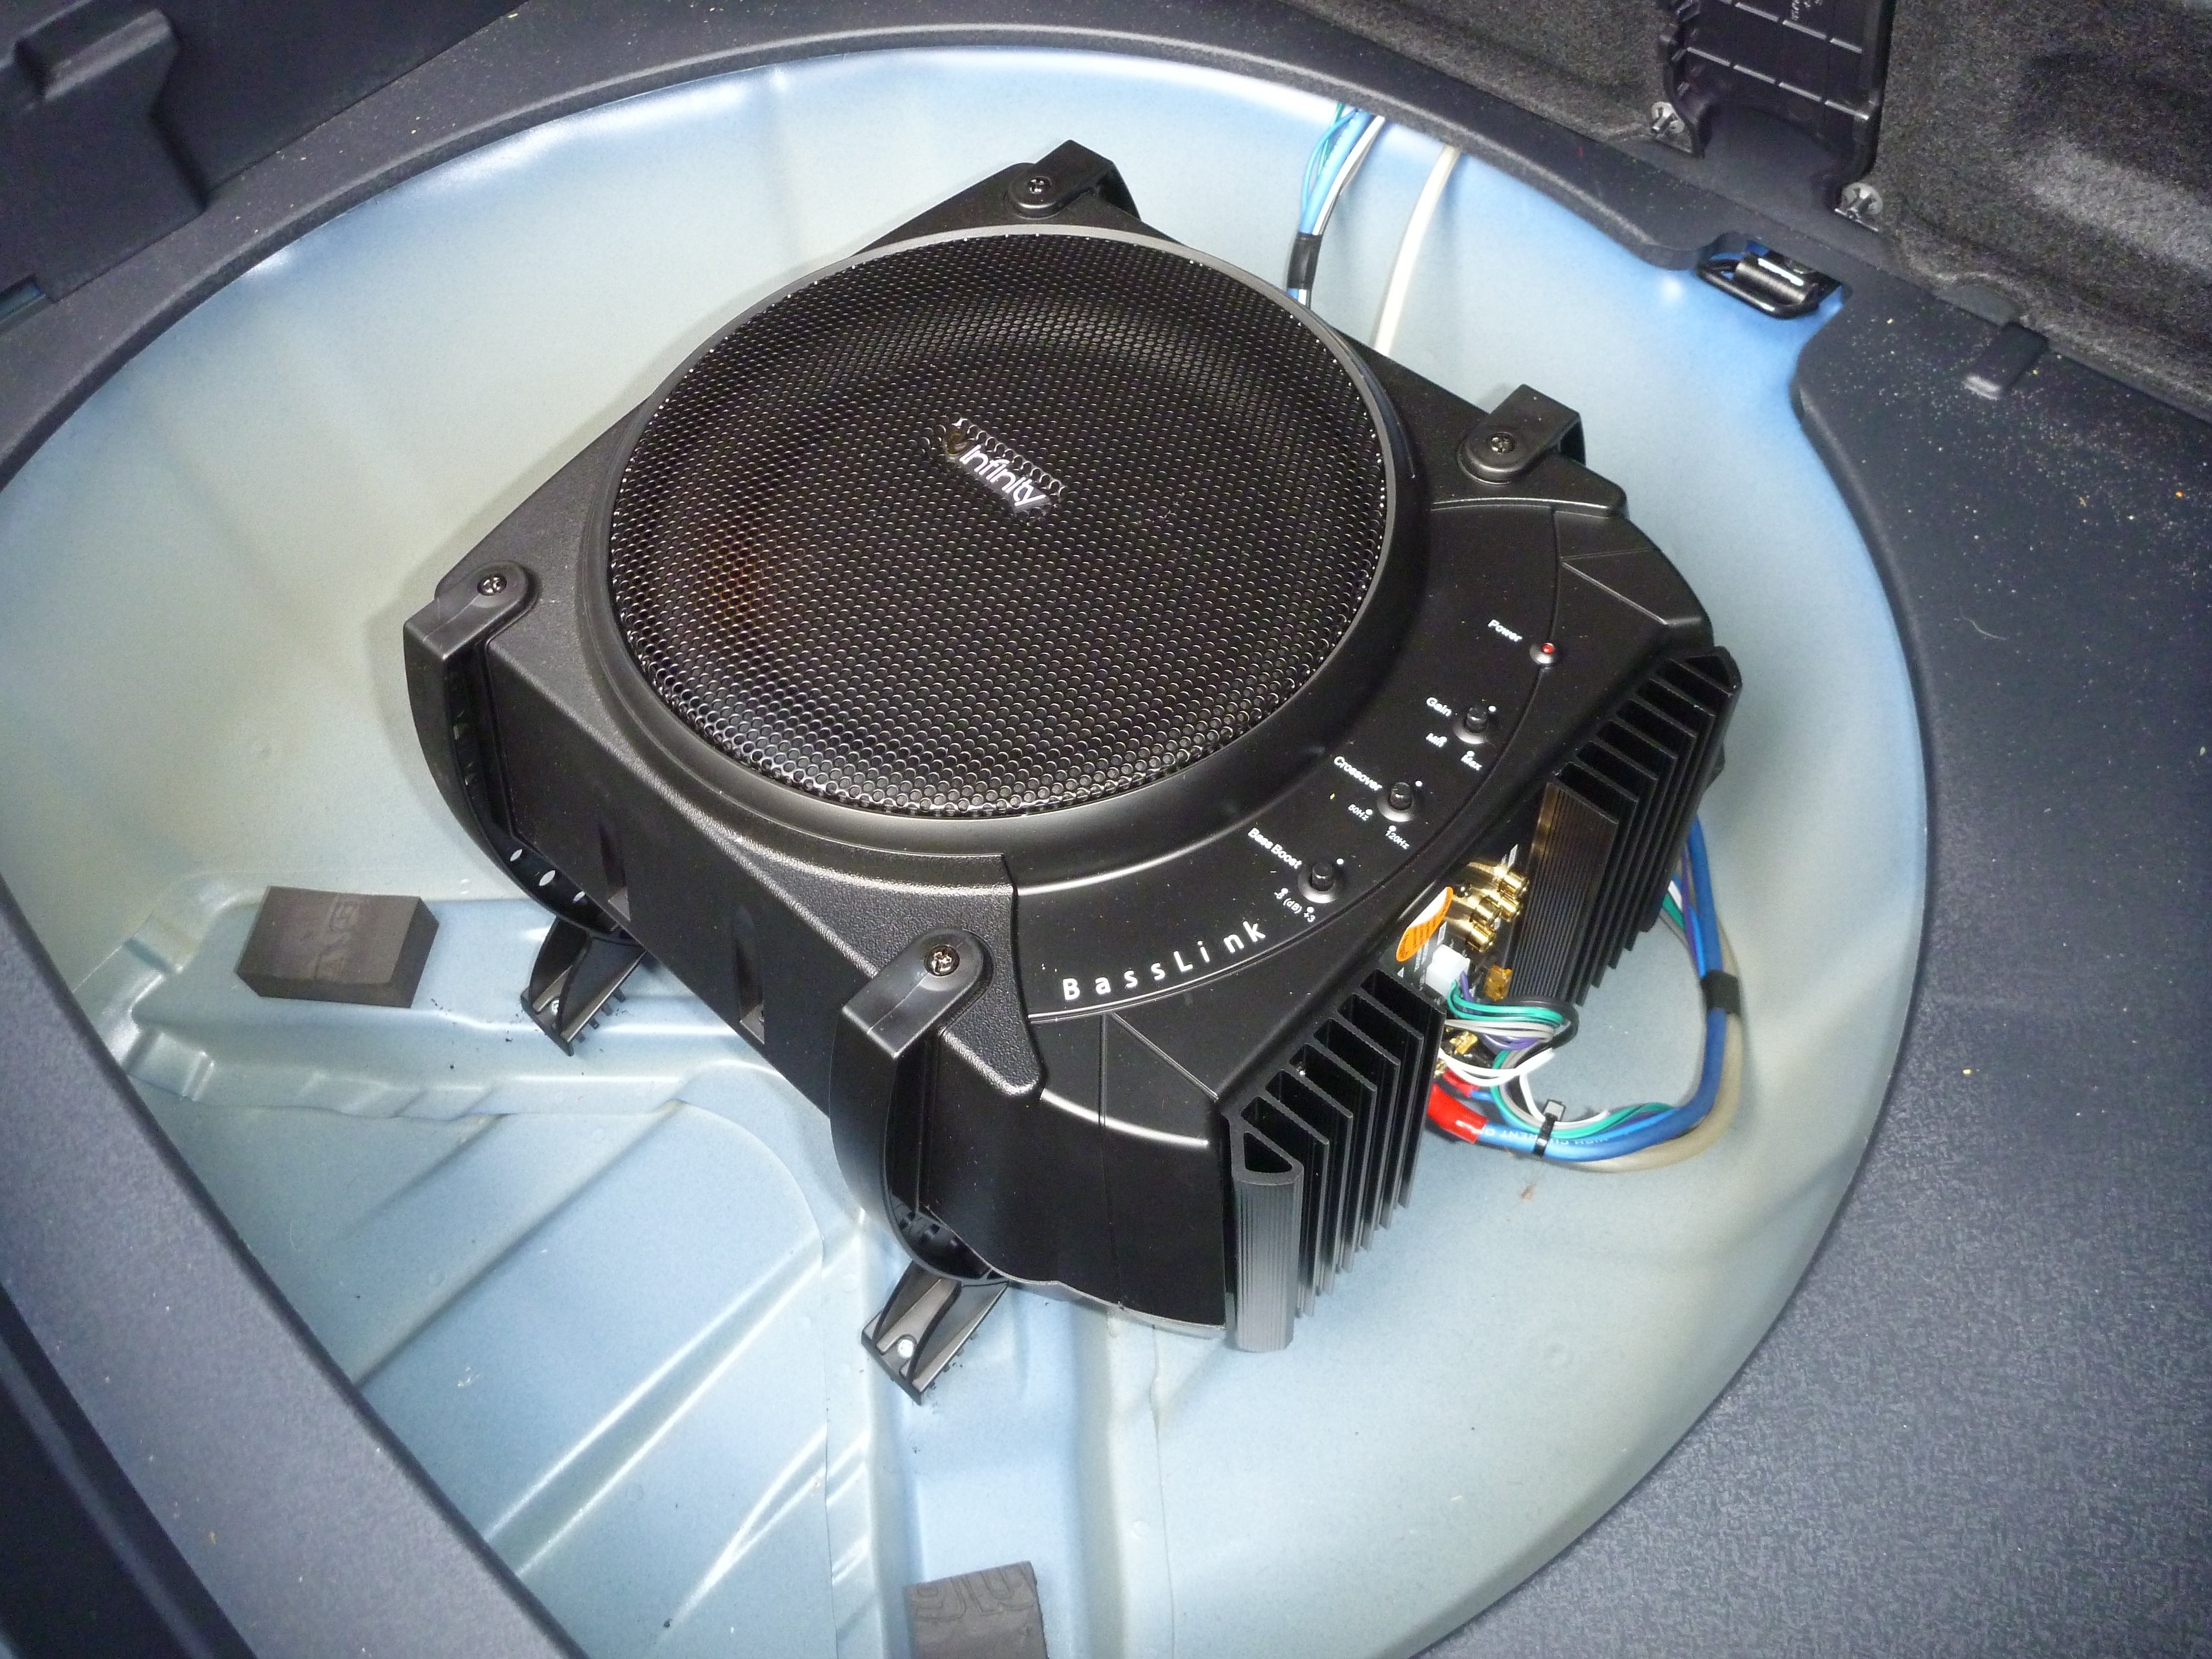 2013 Kia Rio Infinity Basslink powered subwoofer in spare tire well.